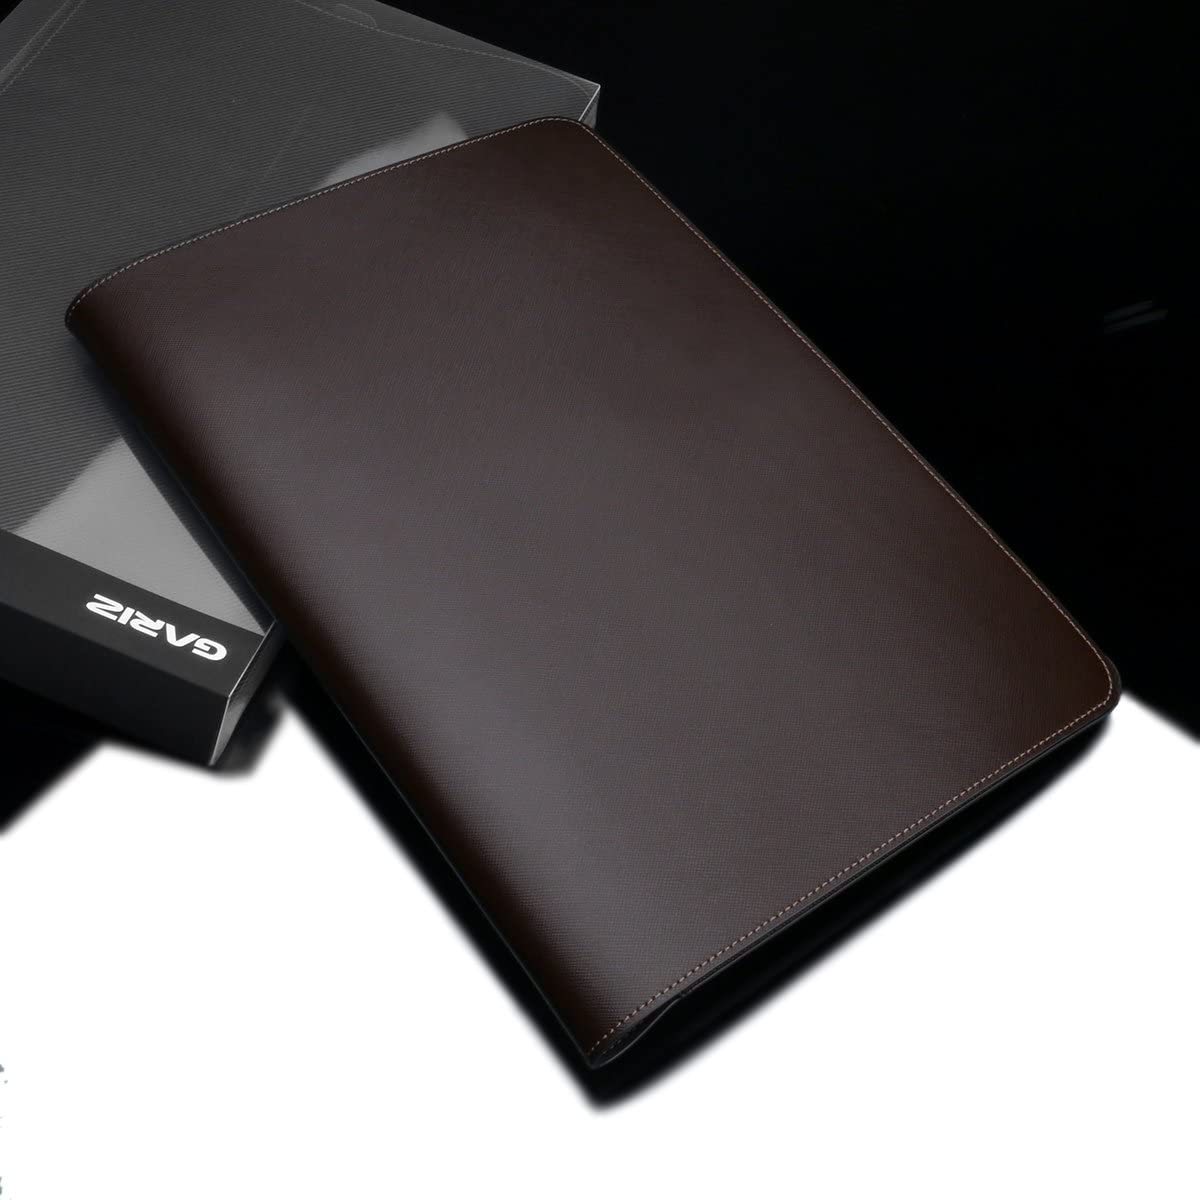 Brown Gariz PL-NBPBR Leather Pouch Cover Case Convertiable Mouse Pad for 13 Inch Notebook Apple Air 13 Pro 13 Retina